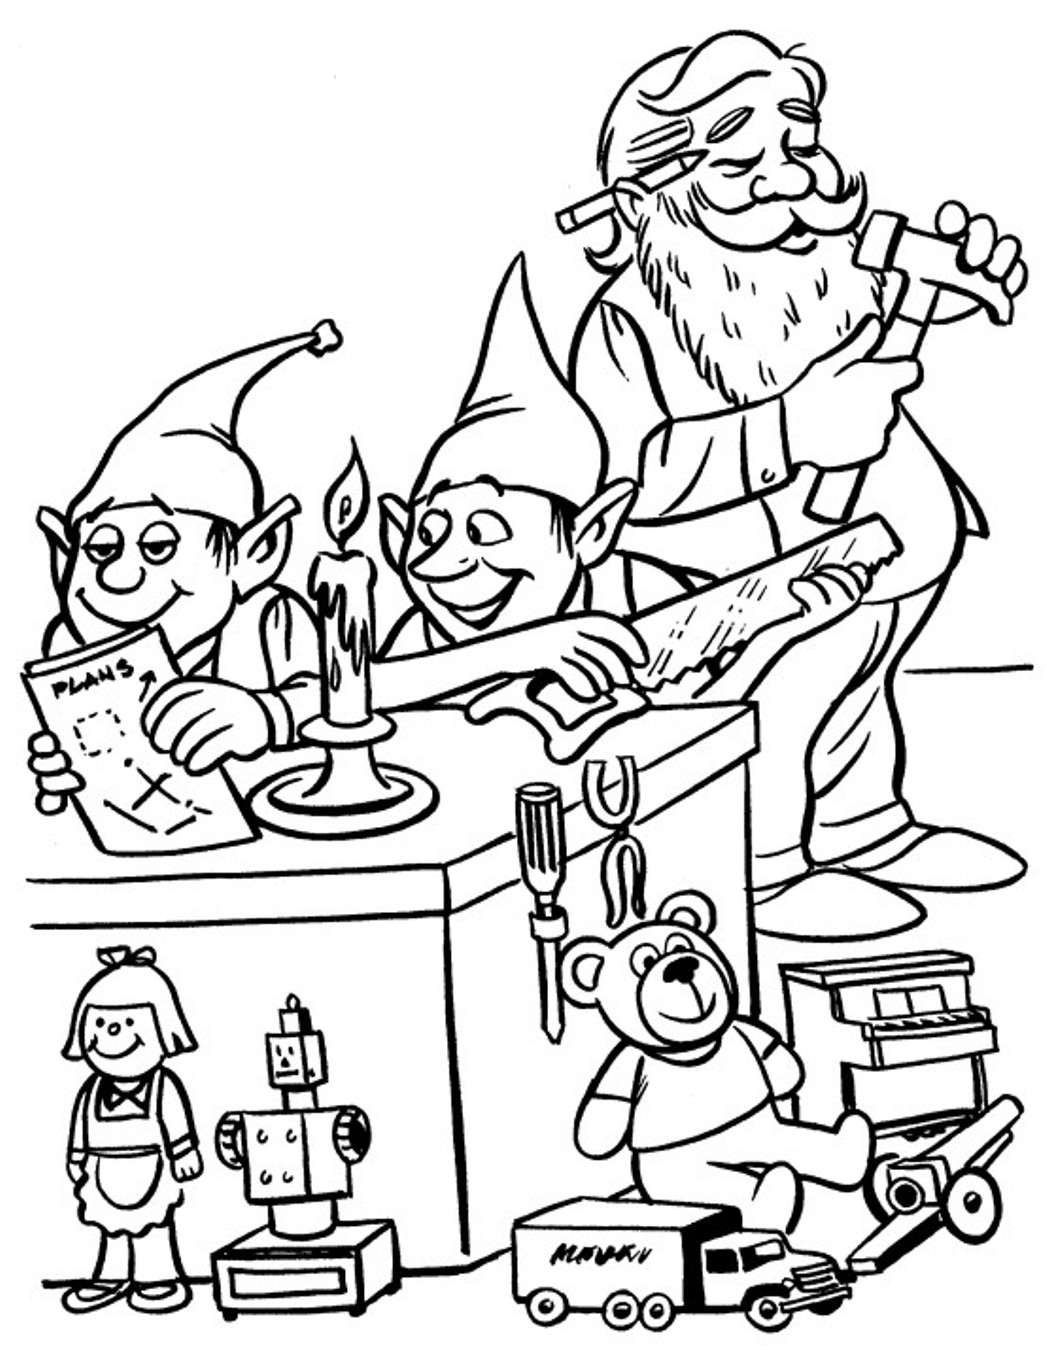 Free Christmas Coloring Pages Santa Claus With Father Pictures To Colour Download Clip Art